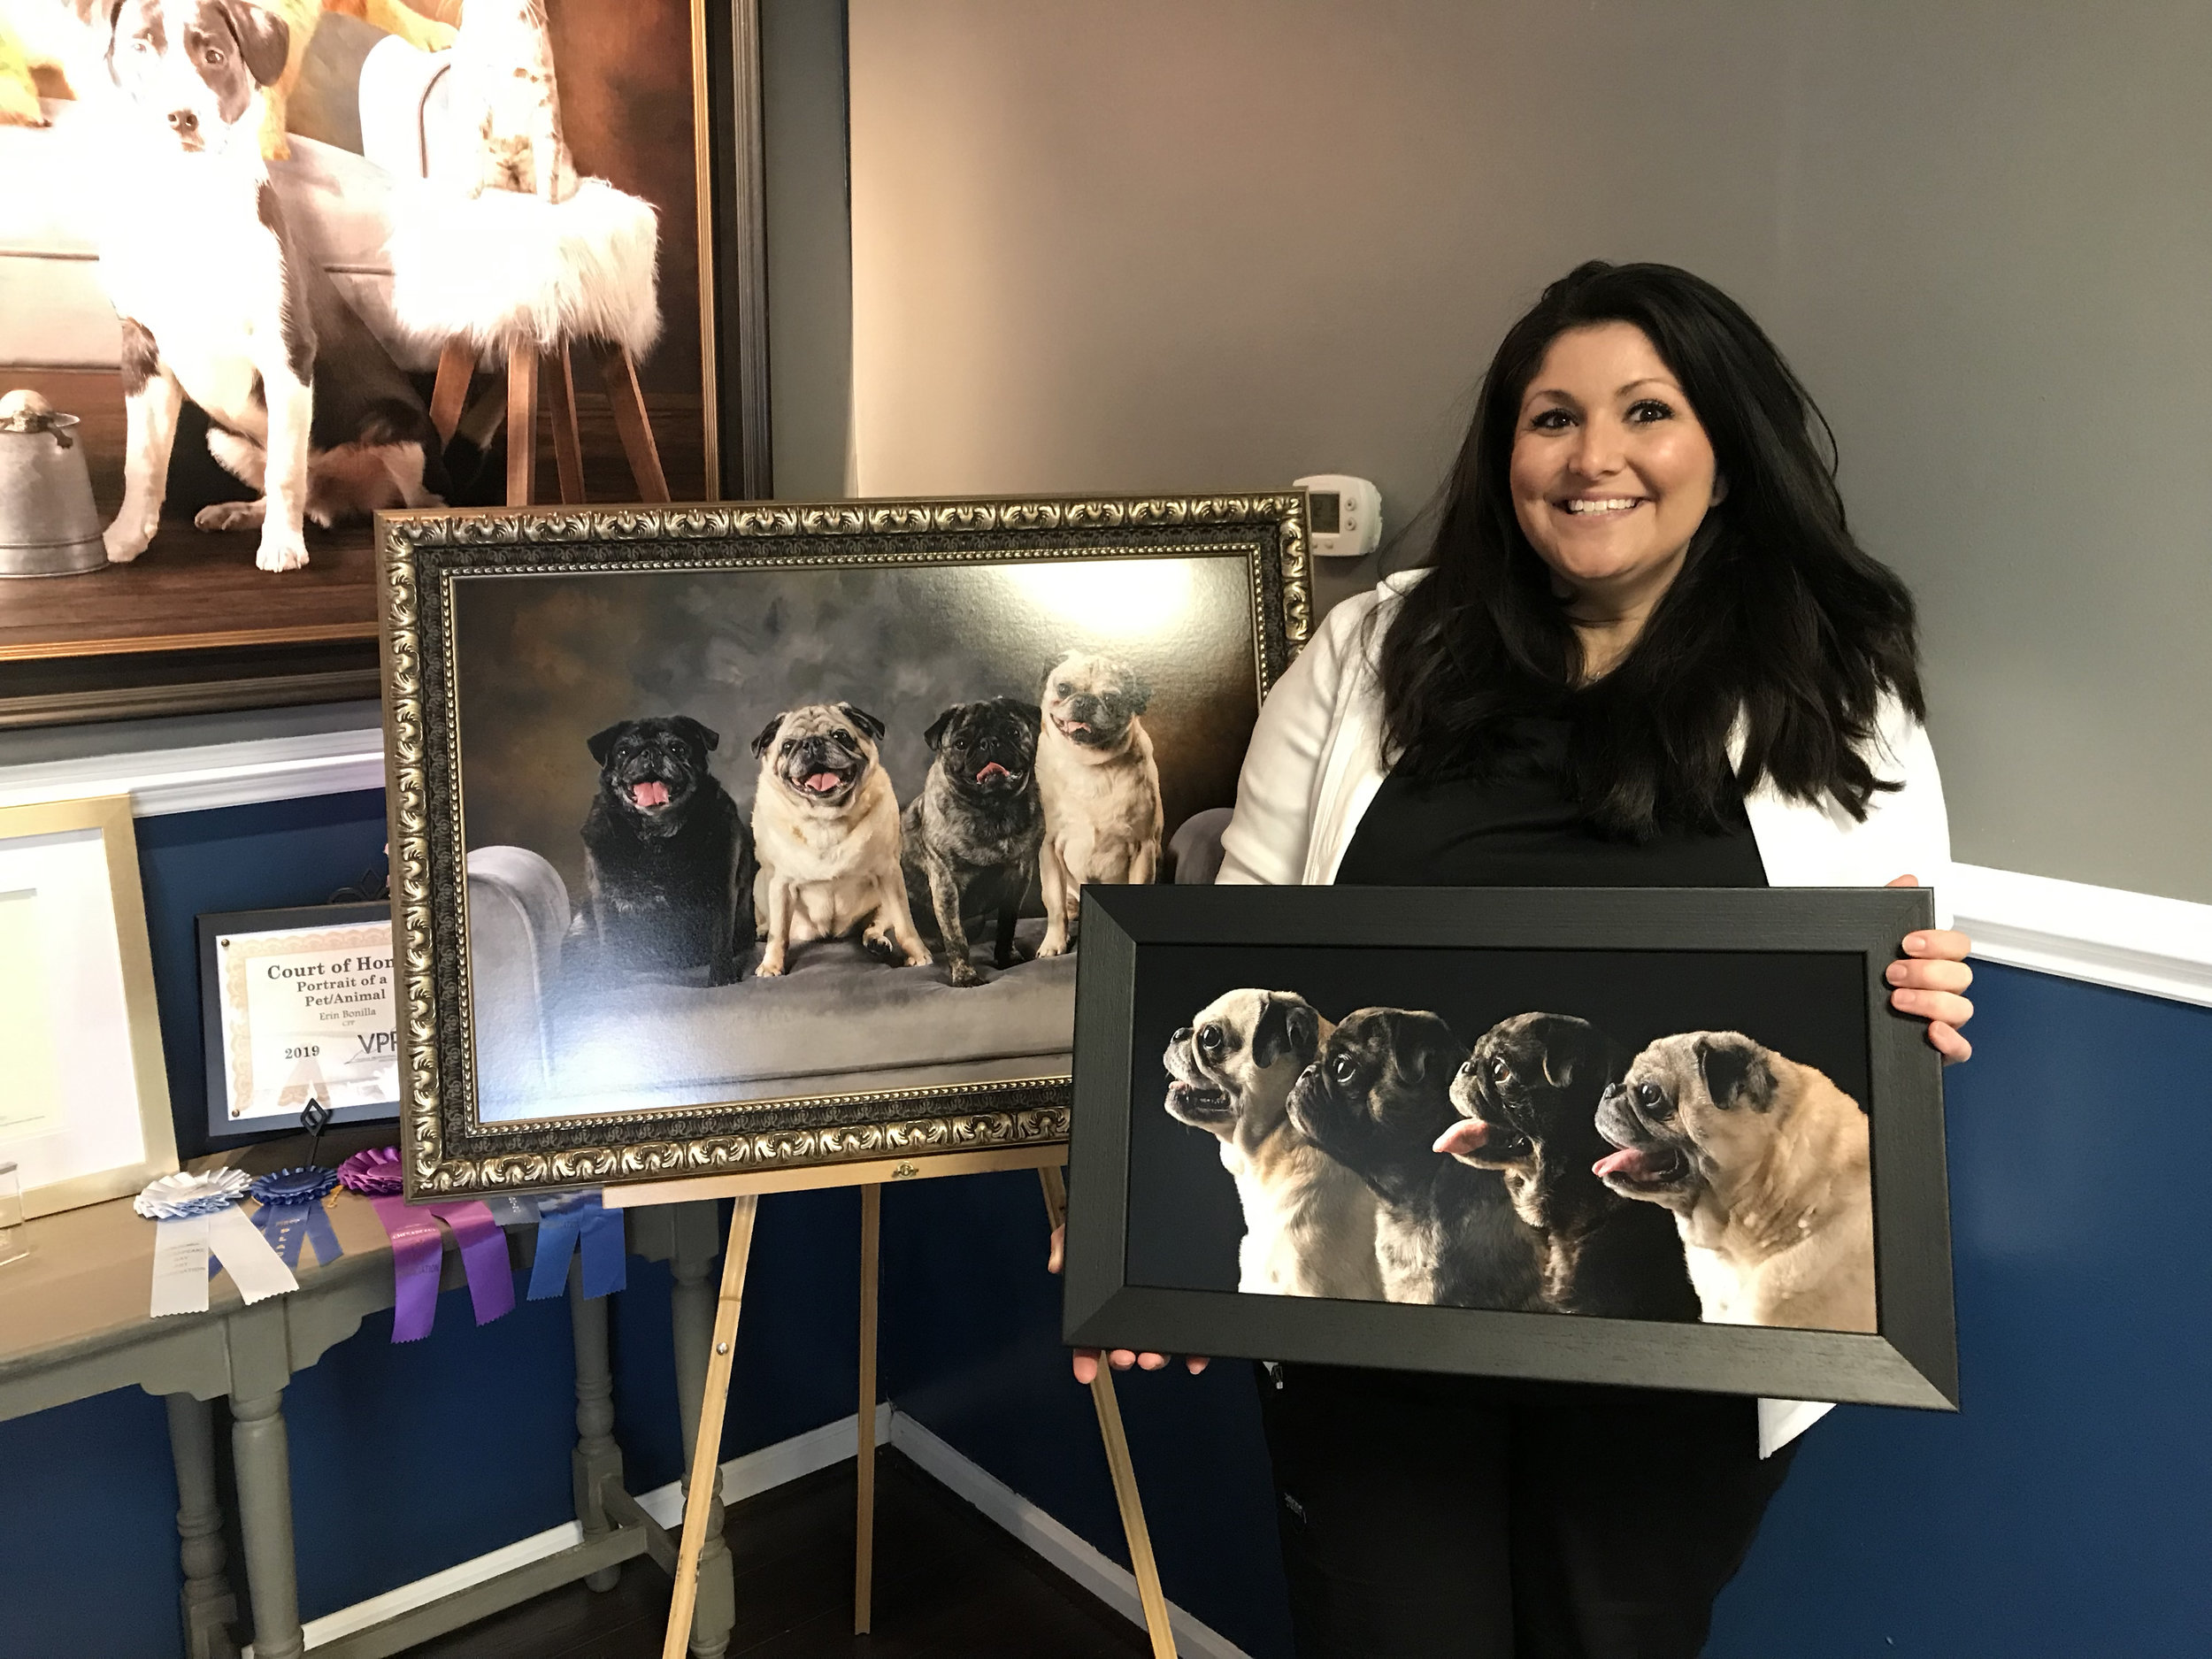 """""""Erin made working with her an enjoyable experience from start to finish! She really takes the time to get to know her clients which translates into her work. She was able to capture the personalities of my four Pugs in a timeless piece of artwork that far exceeded the high expectations that I already had! She took the time to help me decide what size art would fit best in the space I had and was even able to project the images up on the wall so that I could have an idea of what they were going to look like when hung(this was EXTREMELY helpful!). I cried happy tears at my appointment because her work literally took my breath away and instantly overwhelmed me with the love that I feel for my dogs. Choosing Bonilla Pet Photography to capture one of a kind portraits of your animals will be a decision you won't regret!"""" Lisa H"""